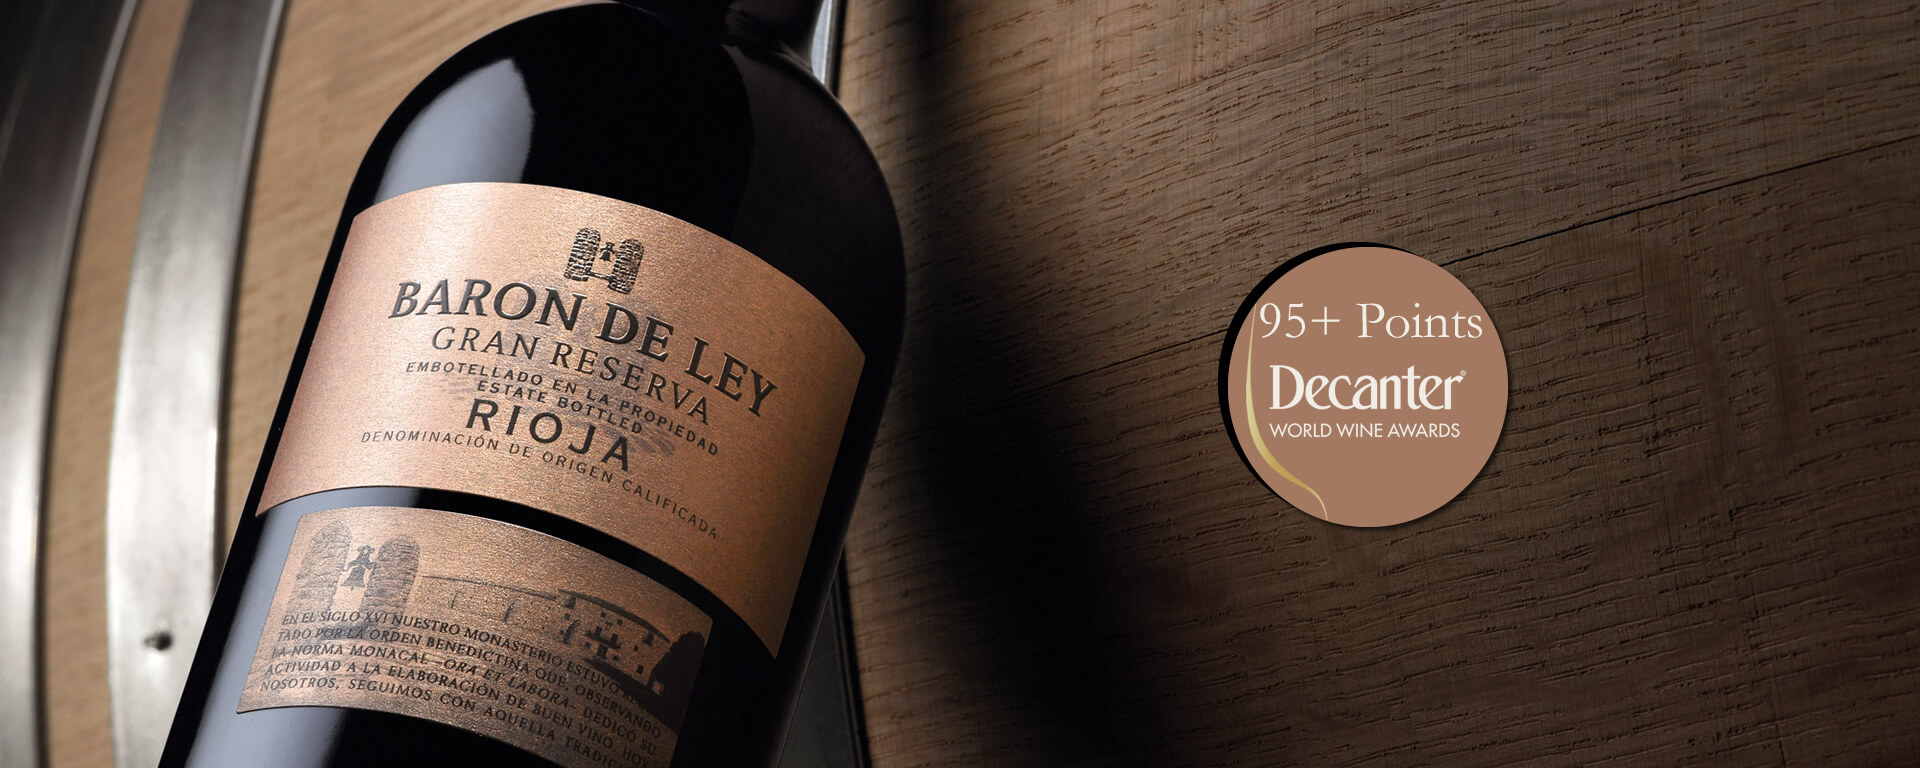 award-winning-wines-wine-brokersbarondeley